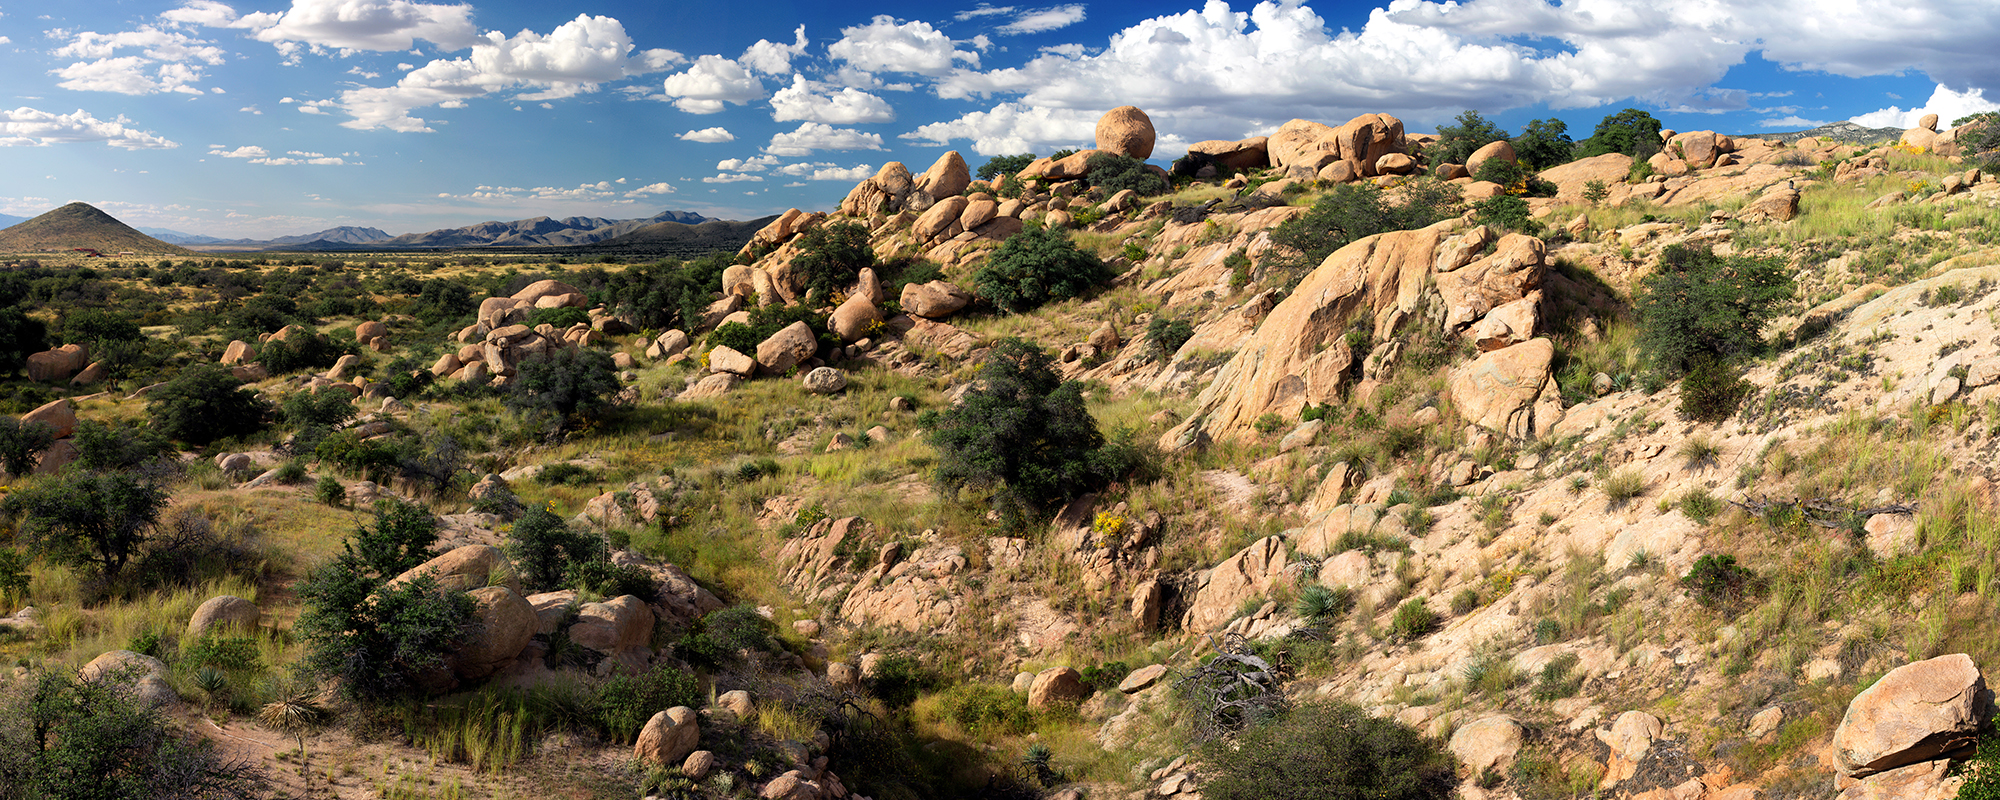 coronado national forest, arizona, council rocks